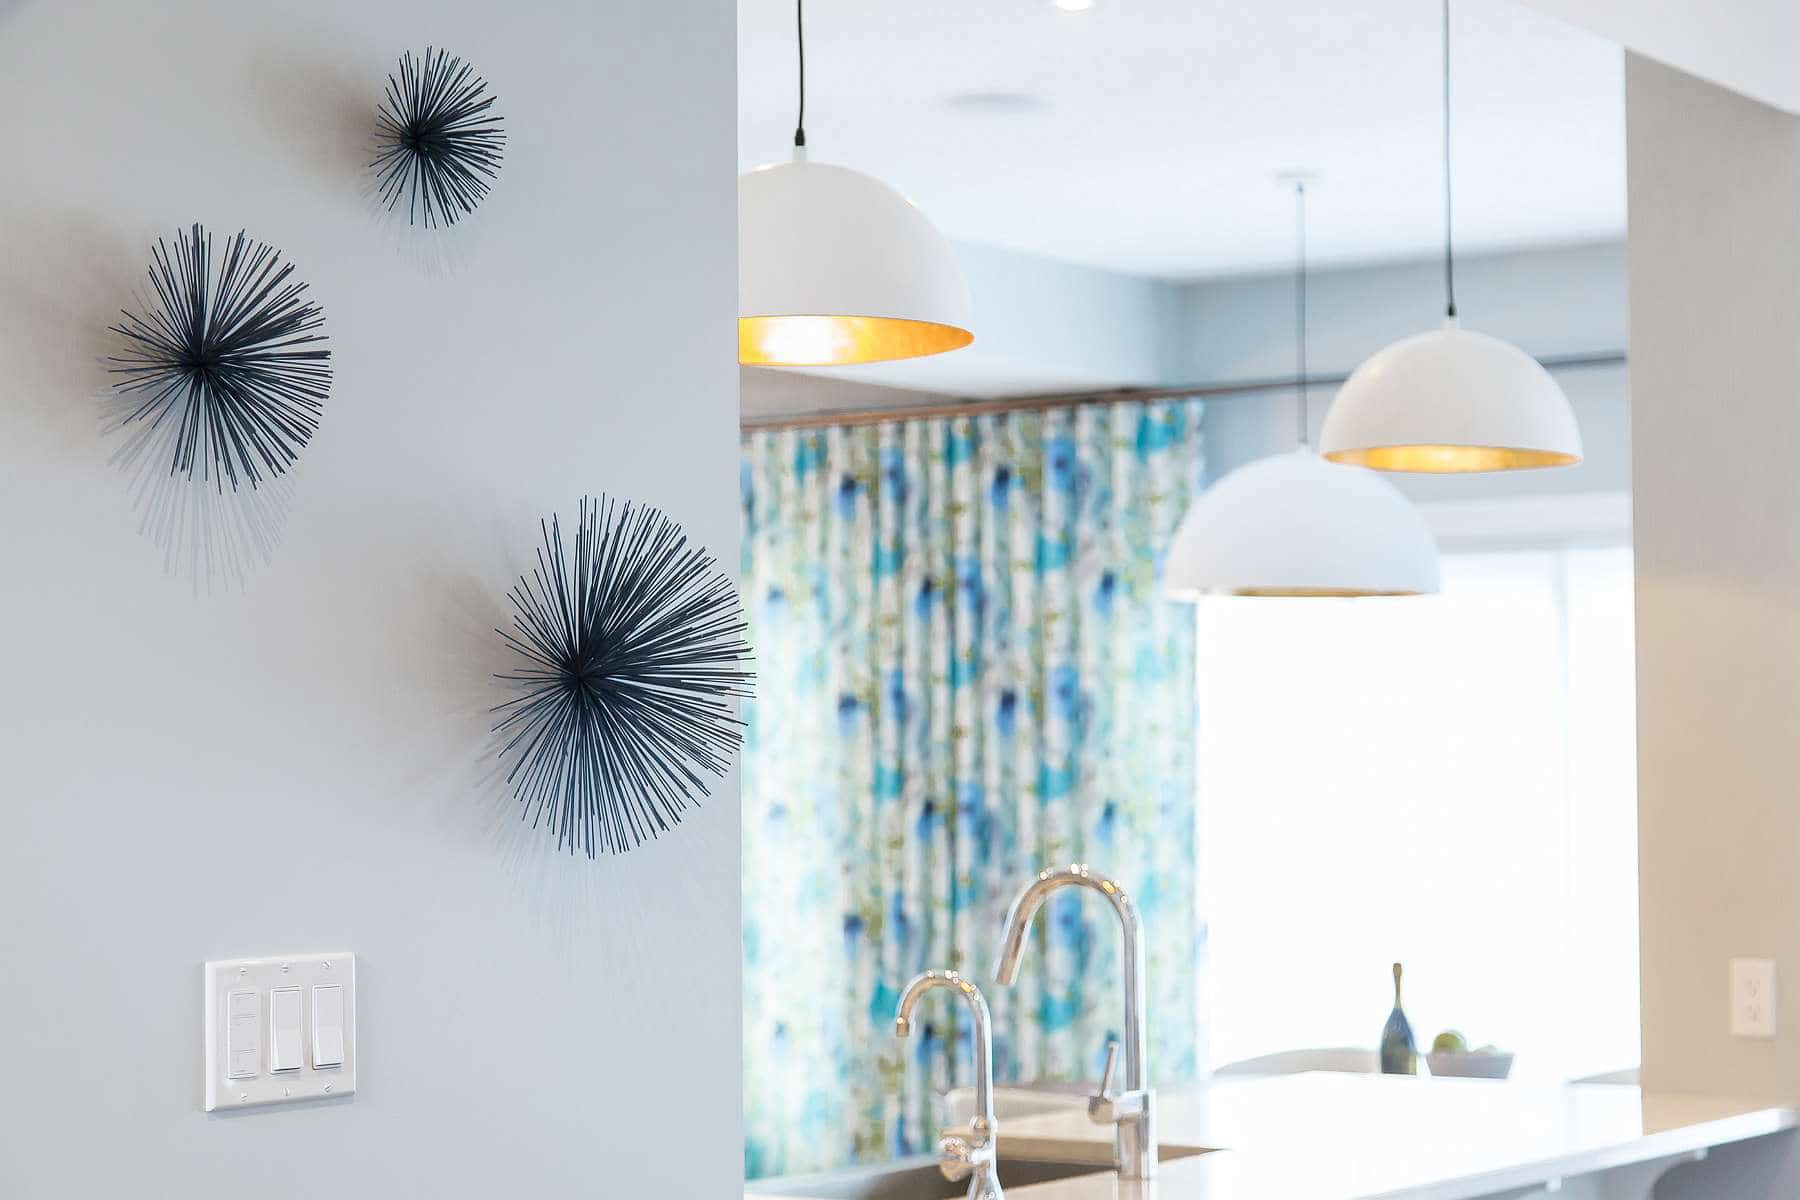 Blue Sea Urchin Wall Decor, white and gold dome pendant light and amaya vintage linen drapes